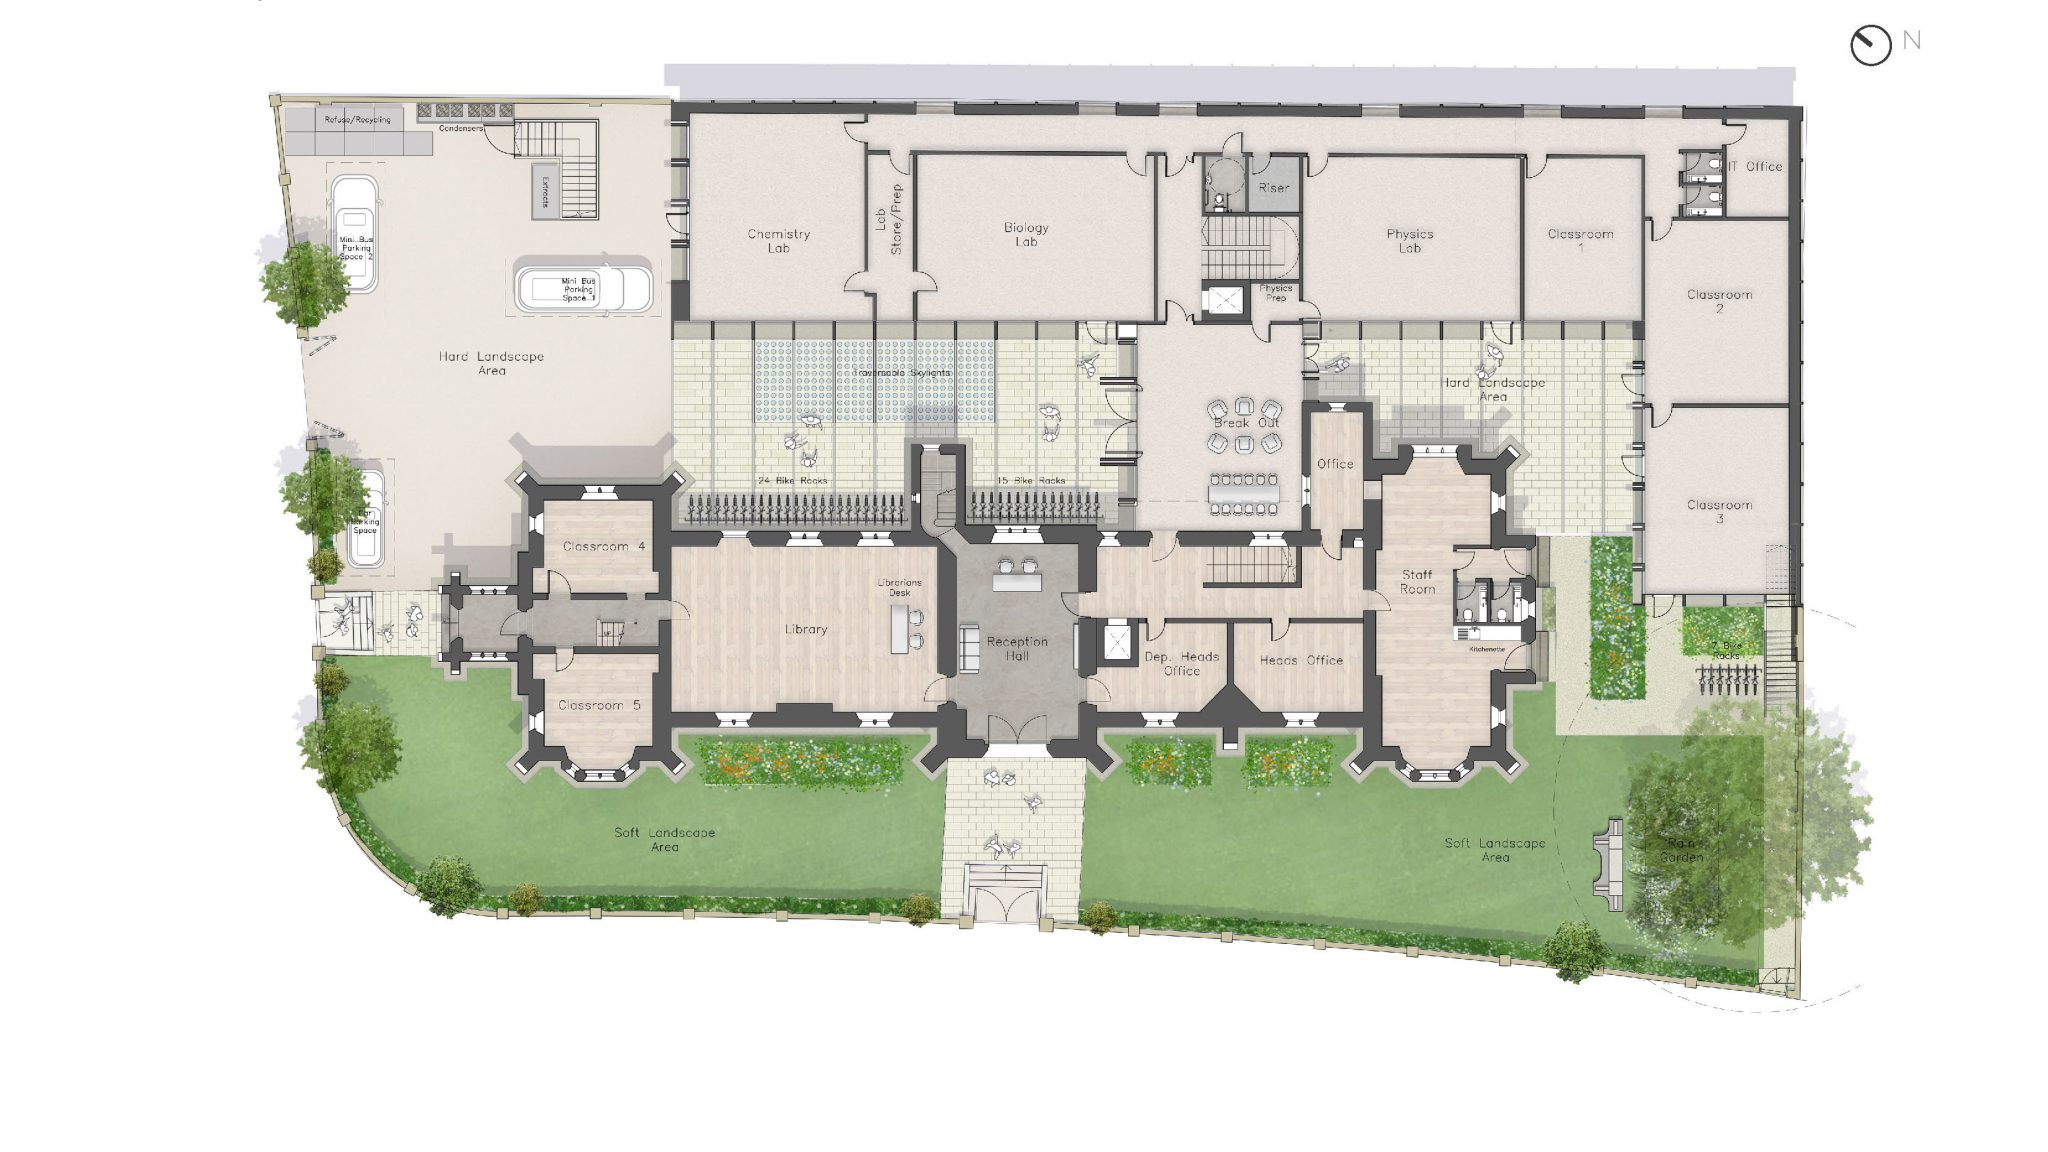 Plan, Ground Floor - The Castle Club School, Fulham, London SW6